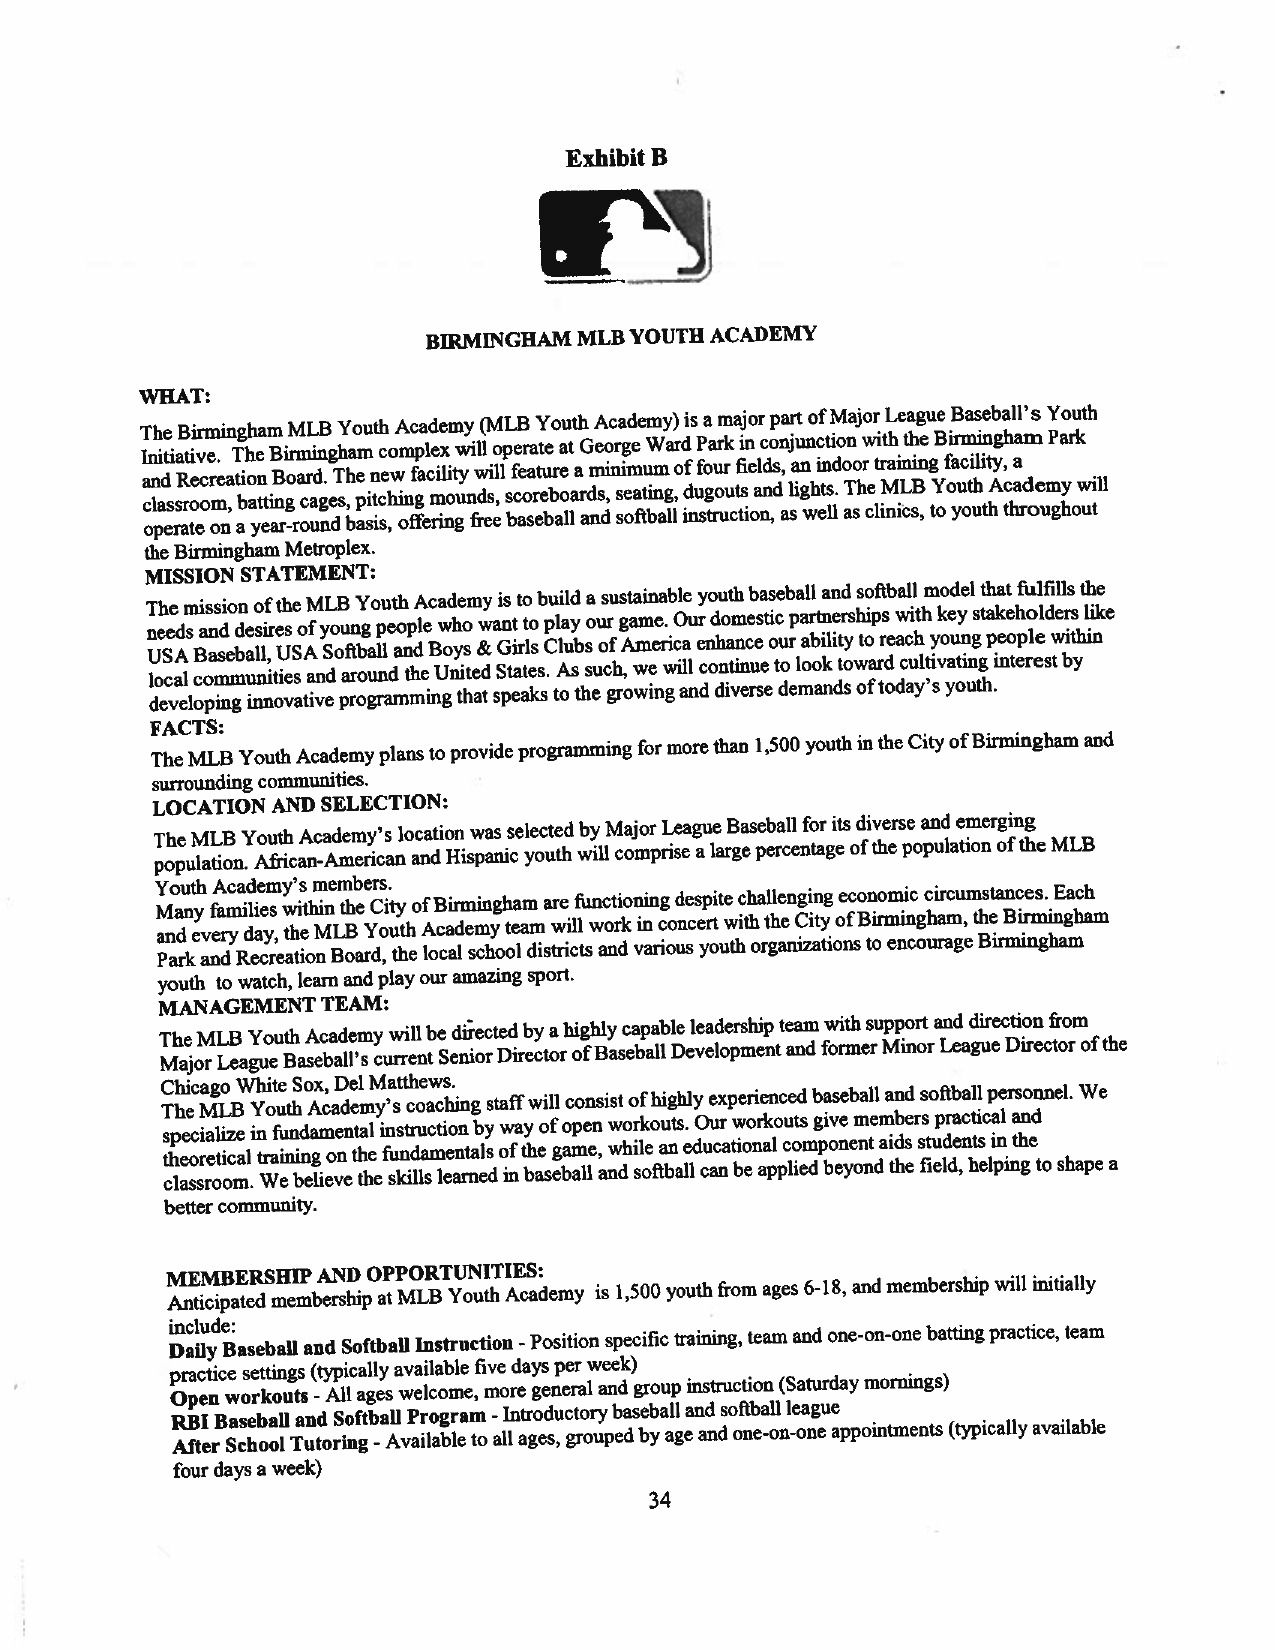 Exhibit B to MLB Youth Academy Agreement-1_pages-to-jpg-0001.jpg